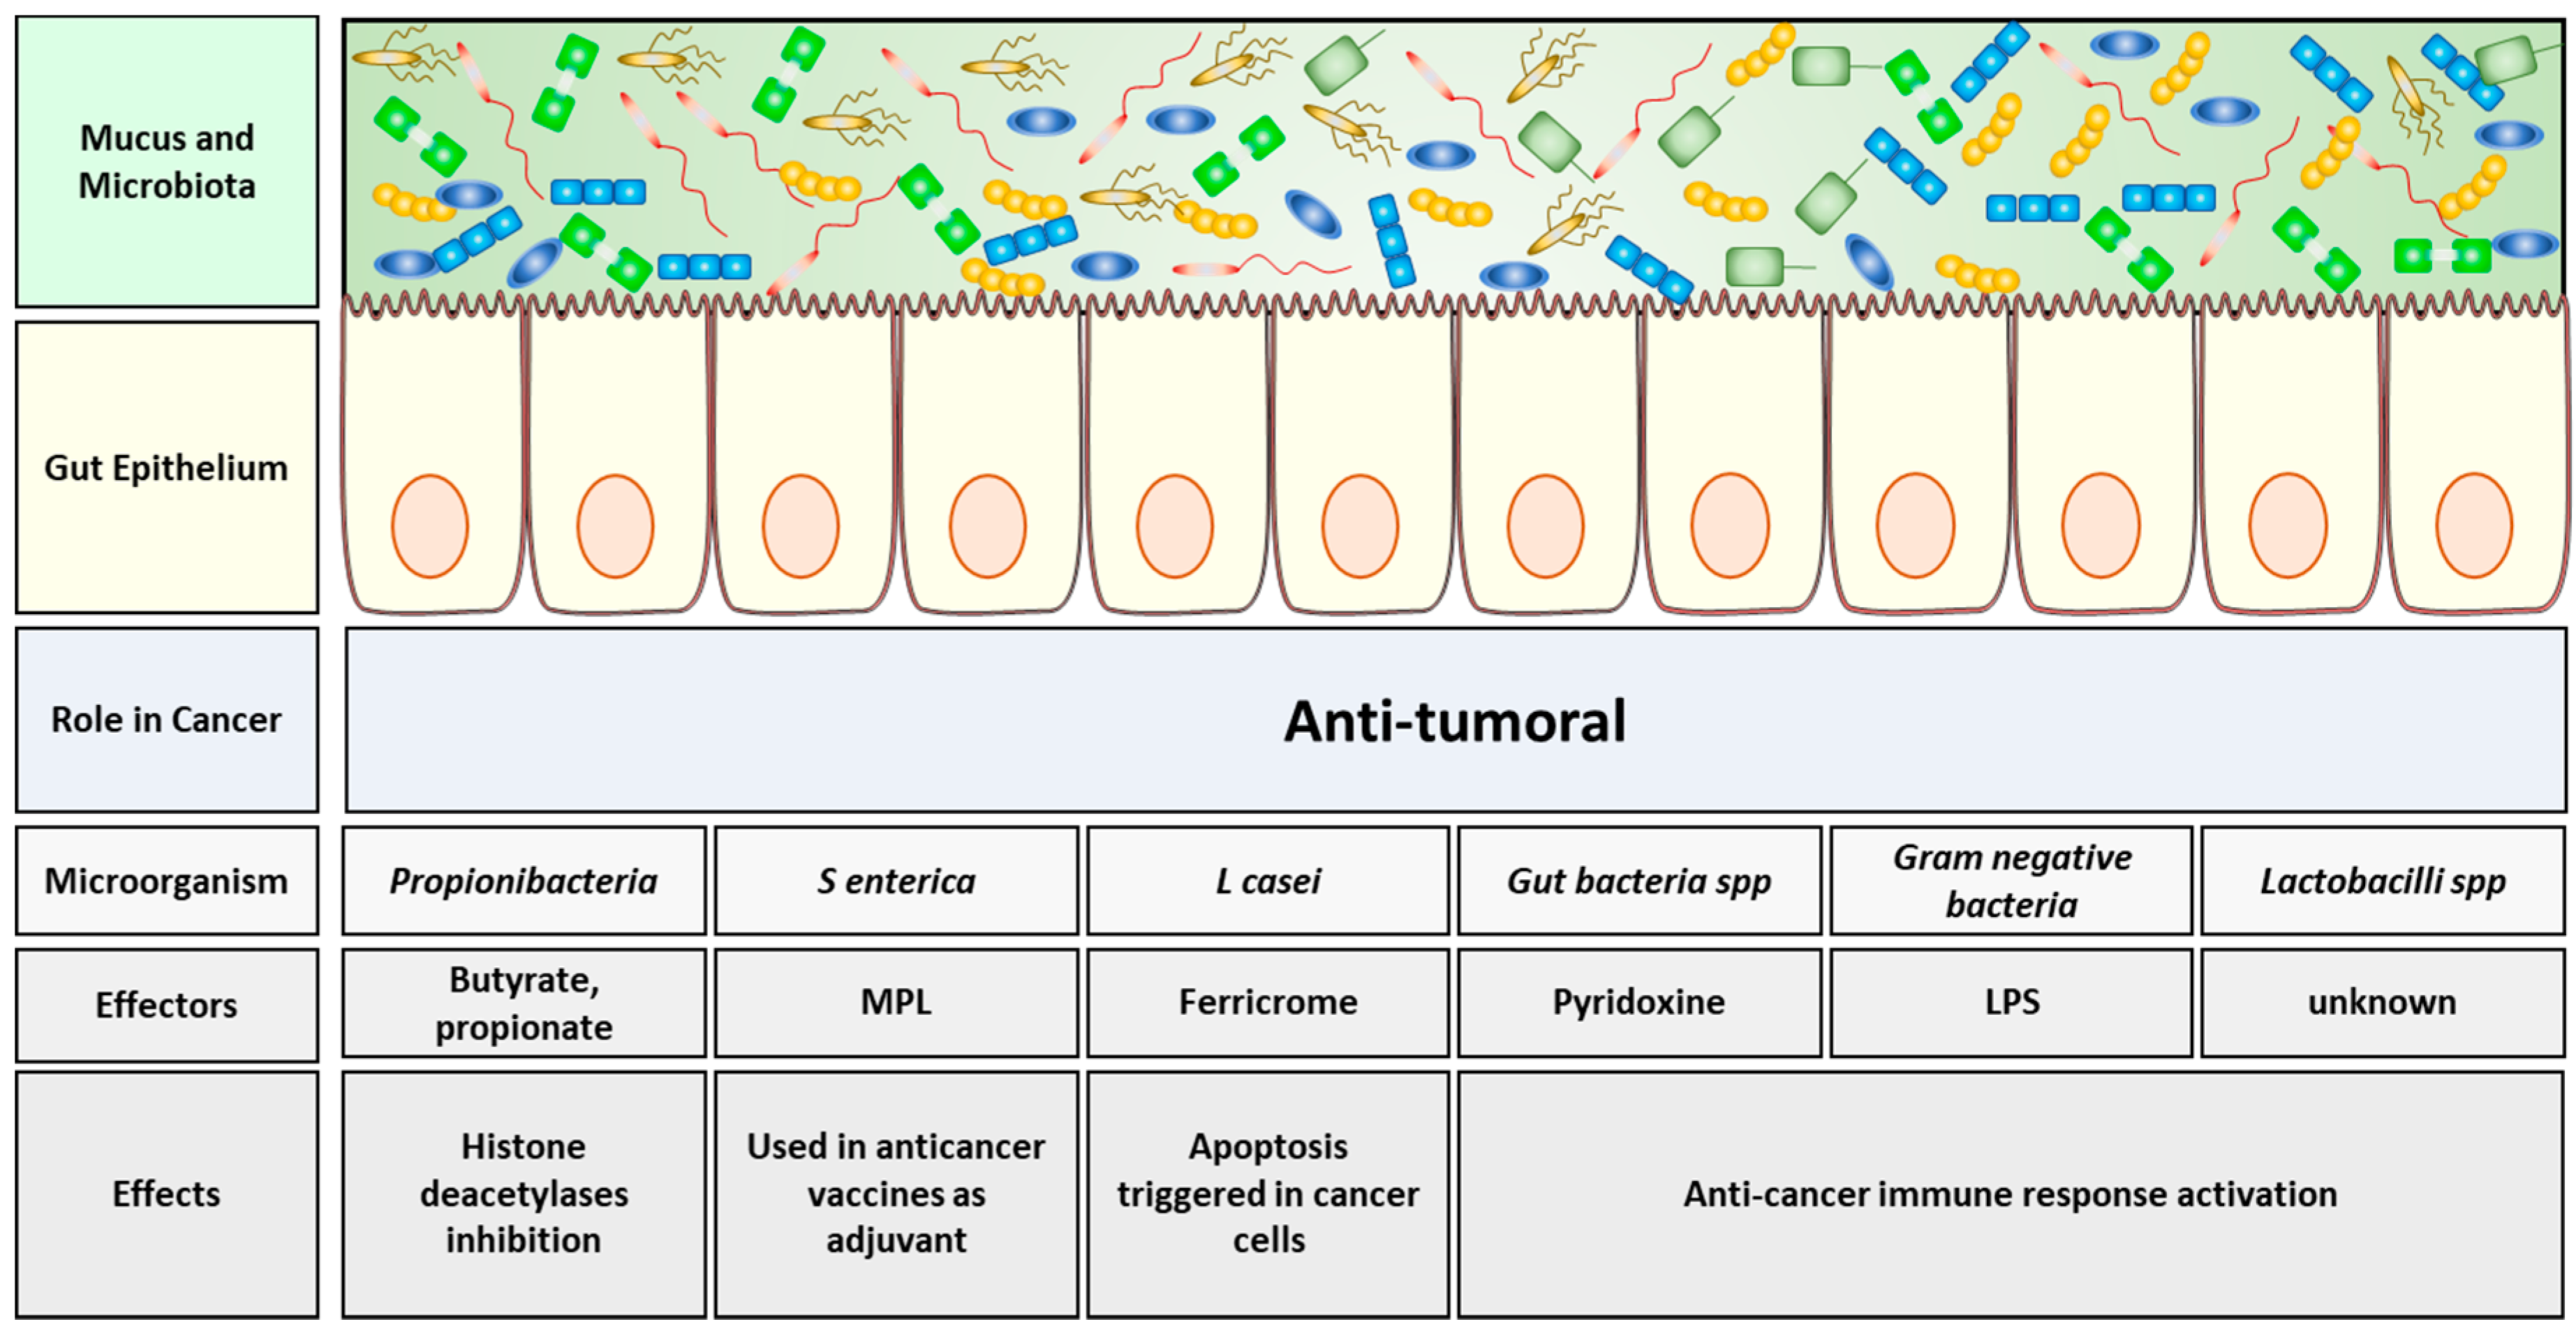 Cancers | Free Full-Text | Gut Microbiota and Cancer: From